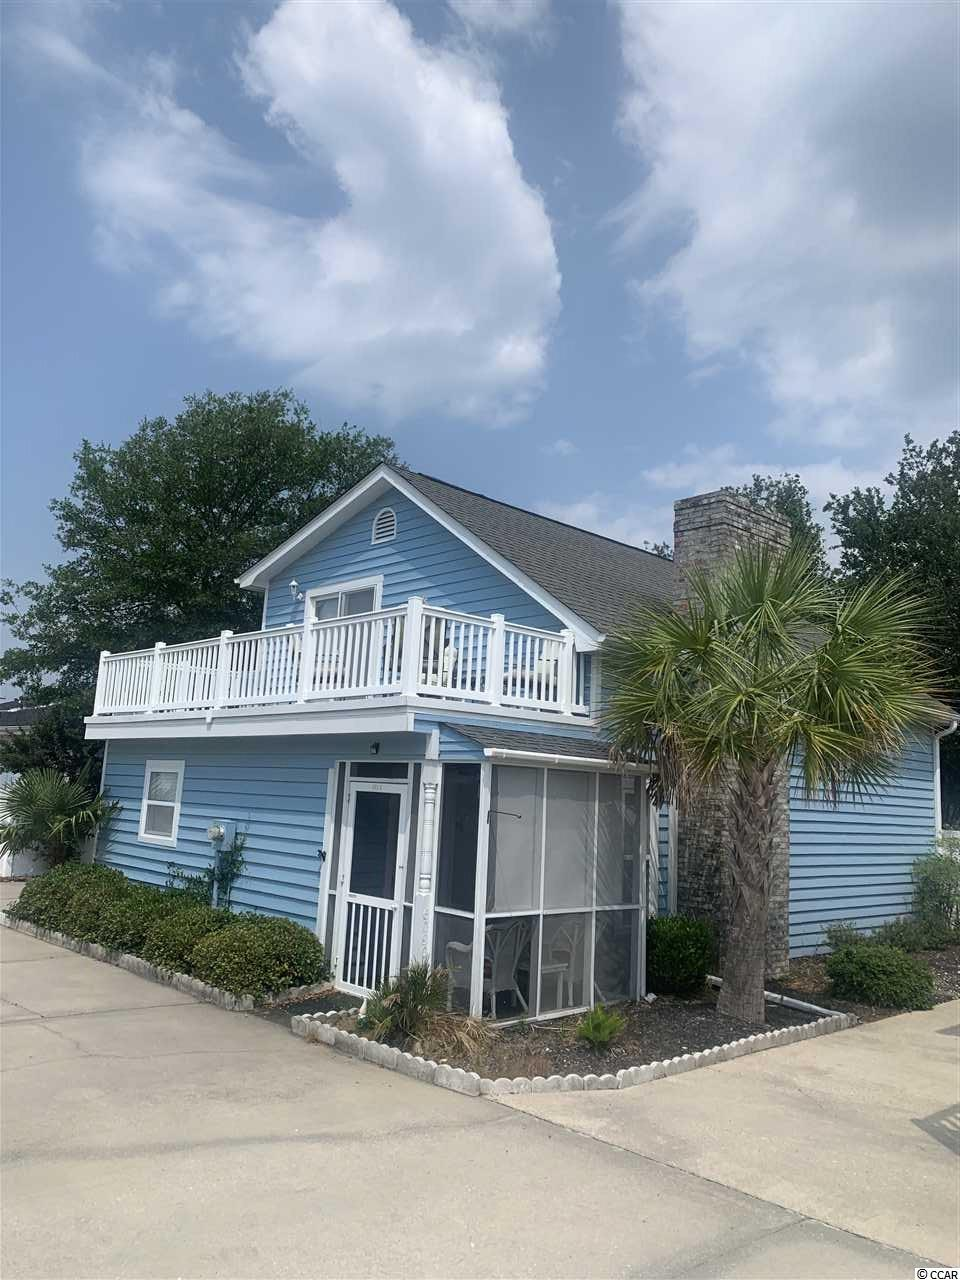 You will fall in love with this quaint patio home in the heart of Crescent Beach in North Myrtle Beach. Come and enjoy all the beach has to offer. The house is located at the end. Do some gardening in the back, grilling, or just sit out by the patio out back. There are all kinds of possibilities here. Perfect for year round living or a vacation home. Only a short walk to the beach to pick up those shells that are waiting for you. Call now to see this perfect spot for you. All measurements and square footage are approximate and not guaranteed. Buyer is responsible for verification.